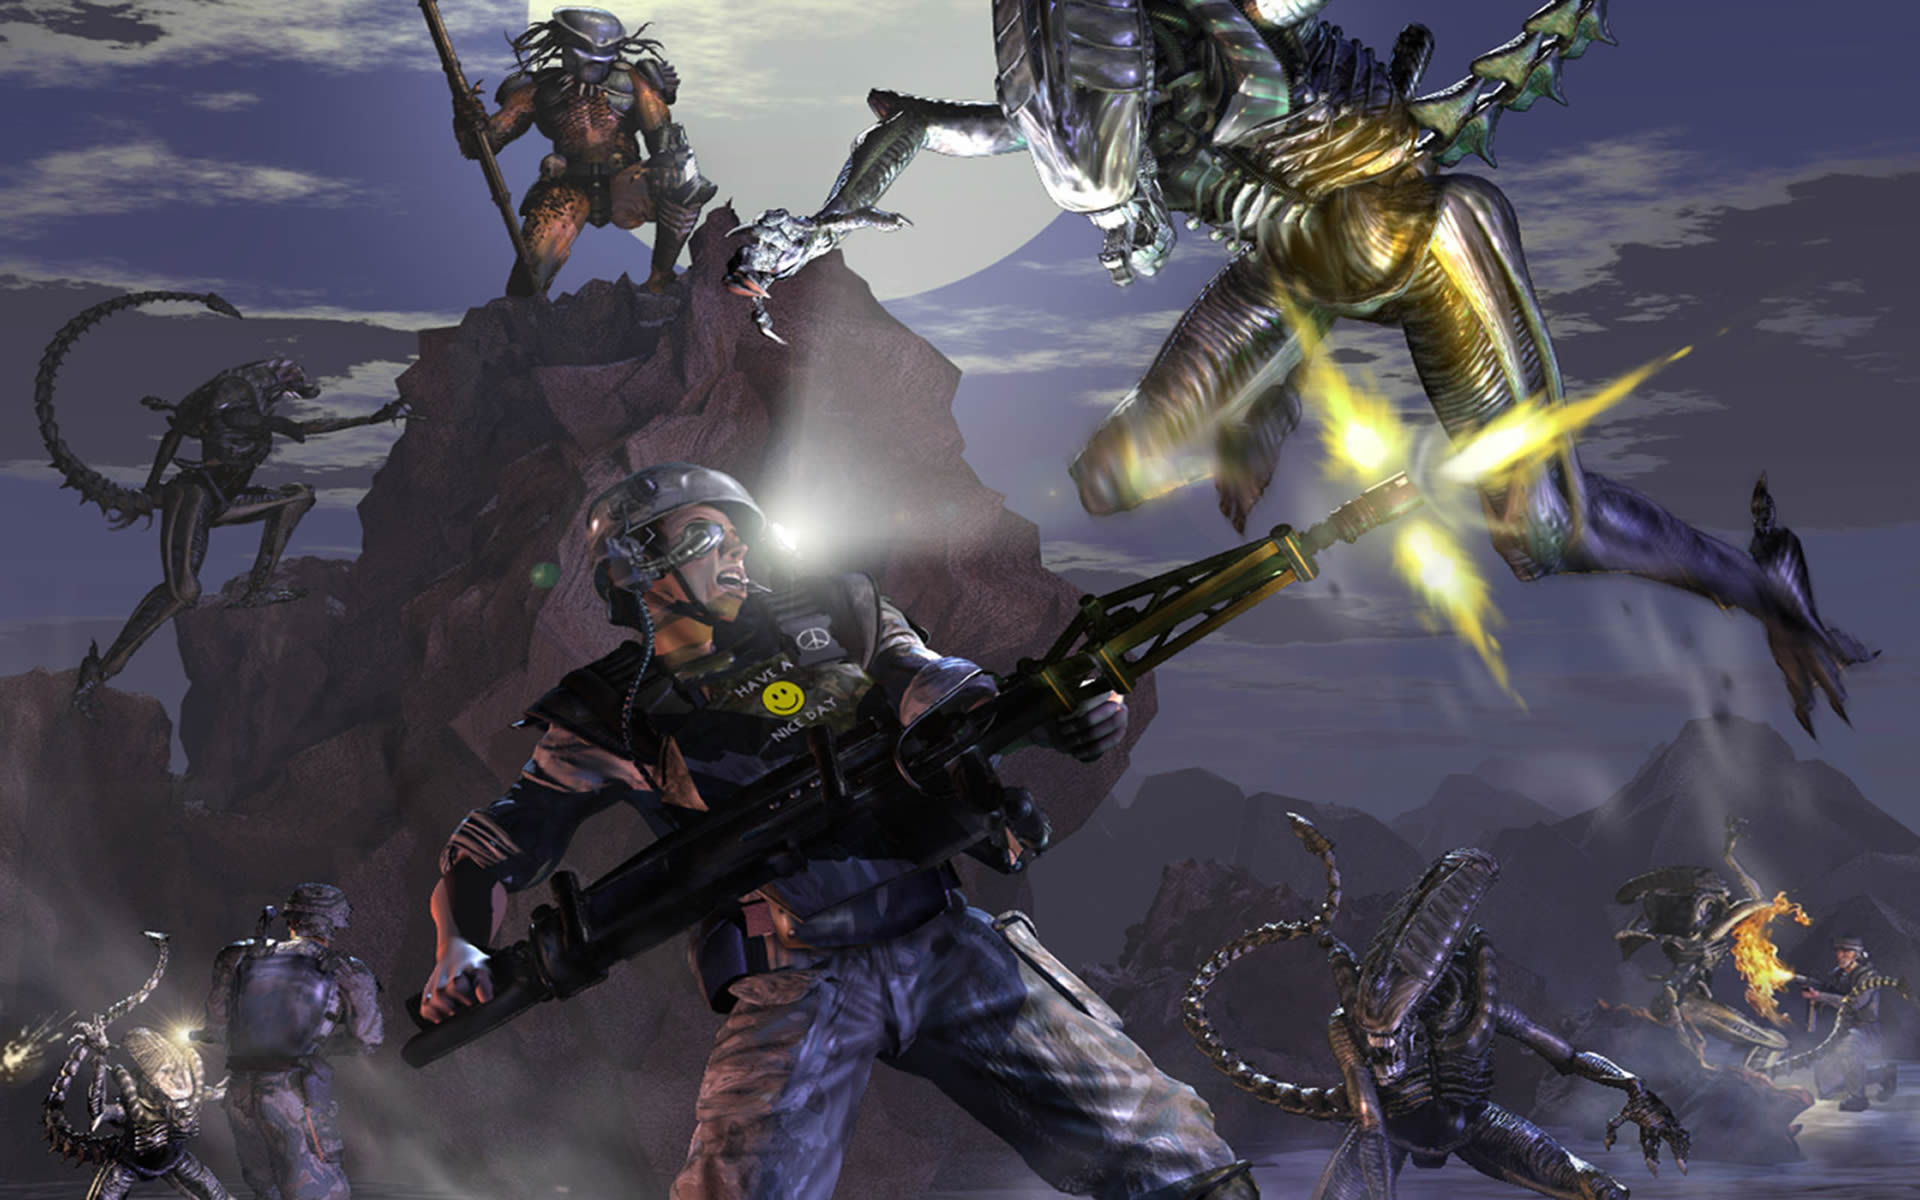 predators aliens and marines in fight Wallpaper Background thumbnail